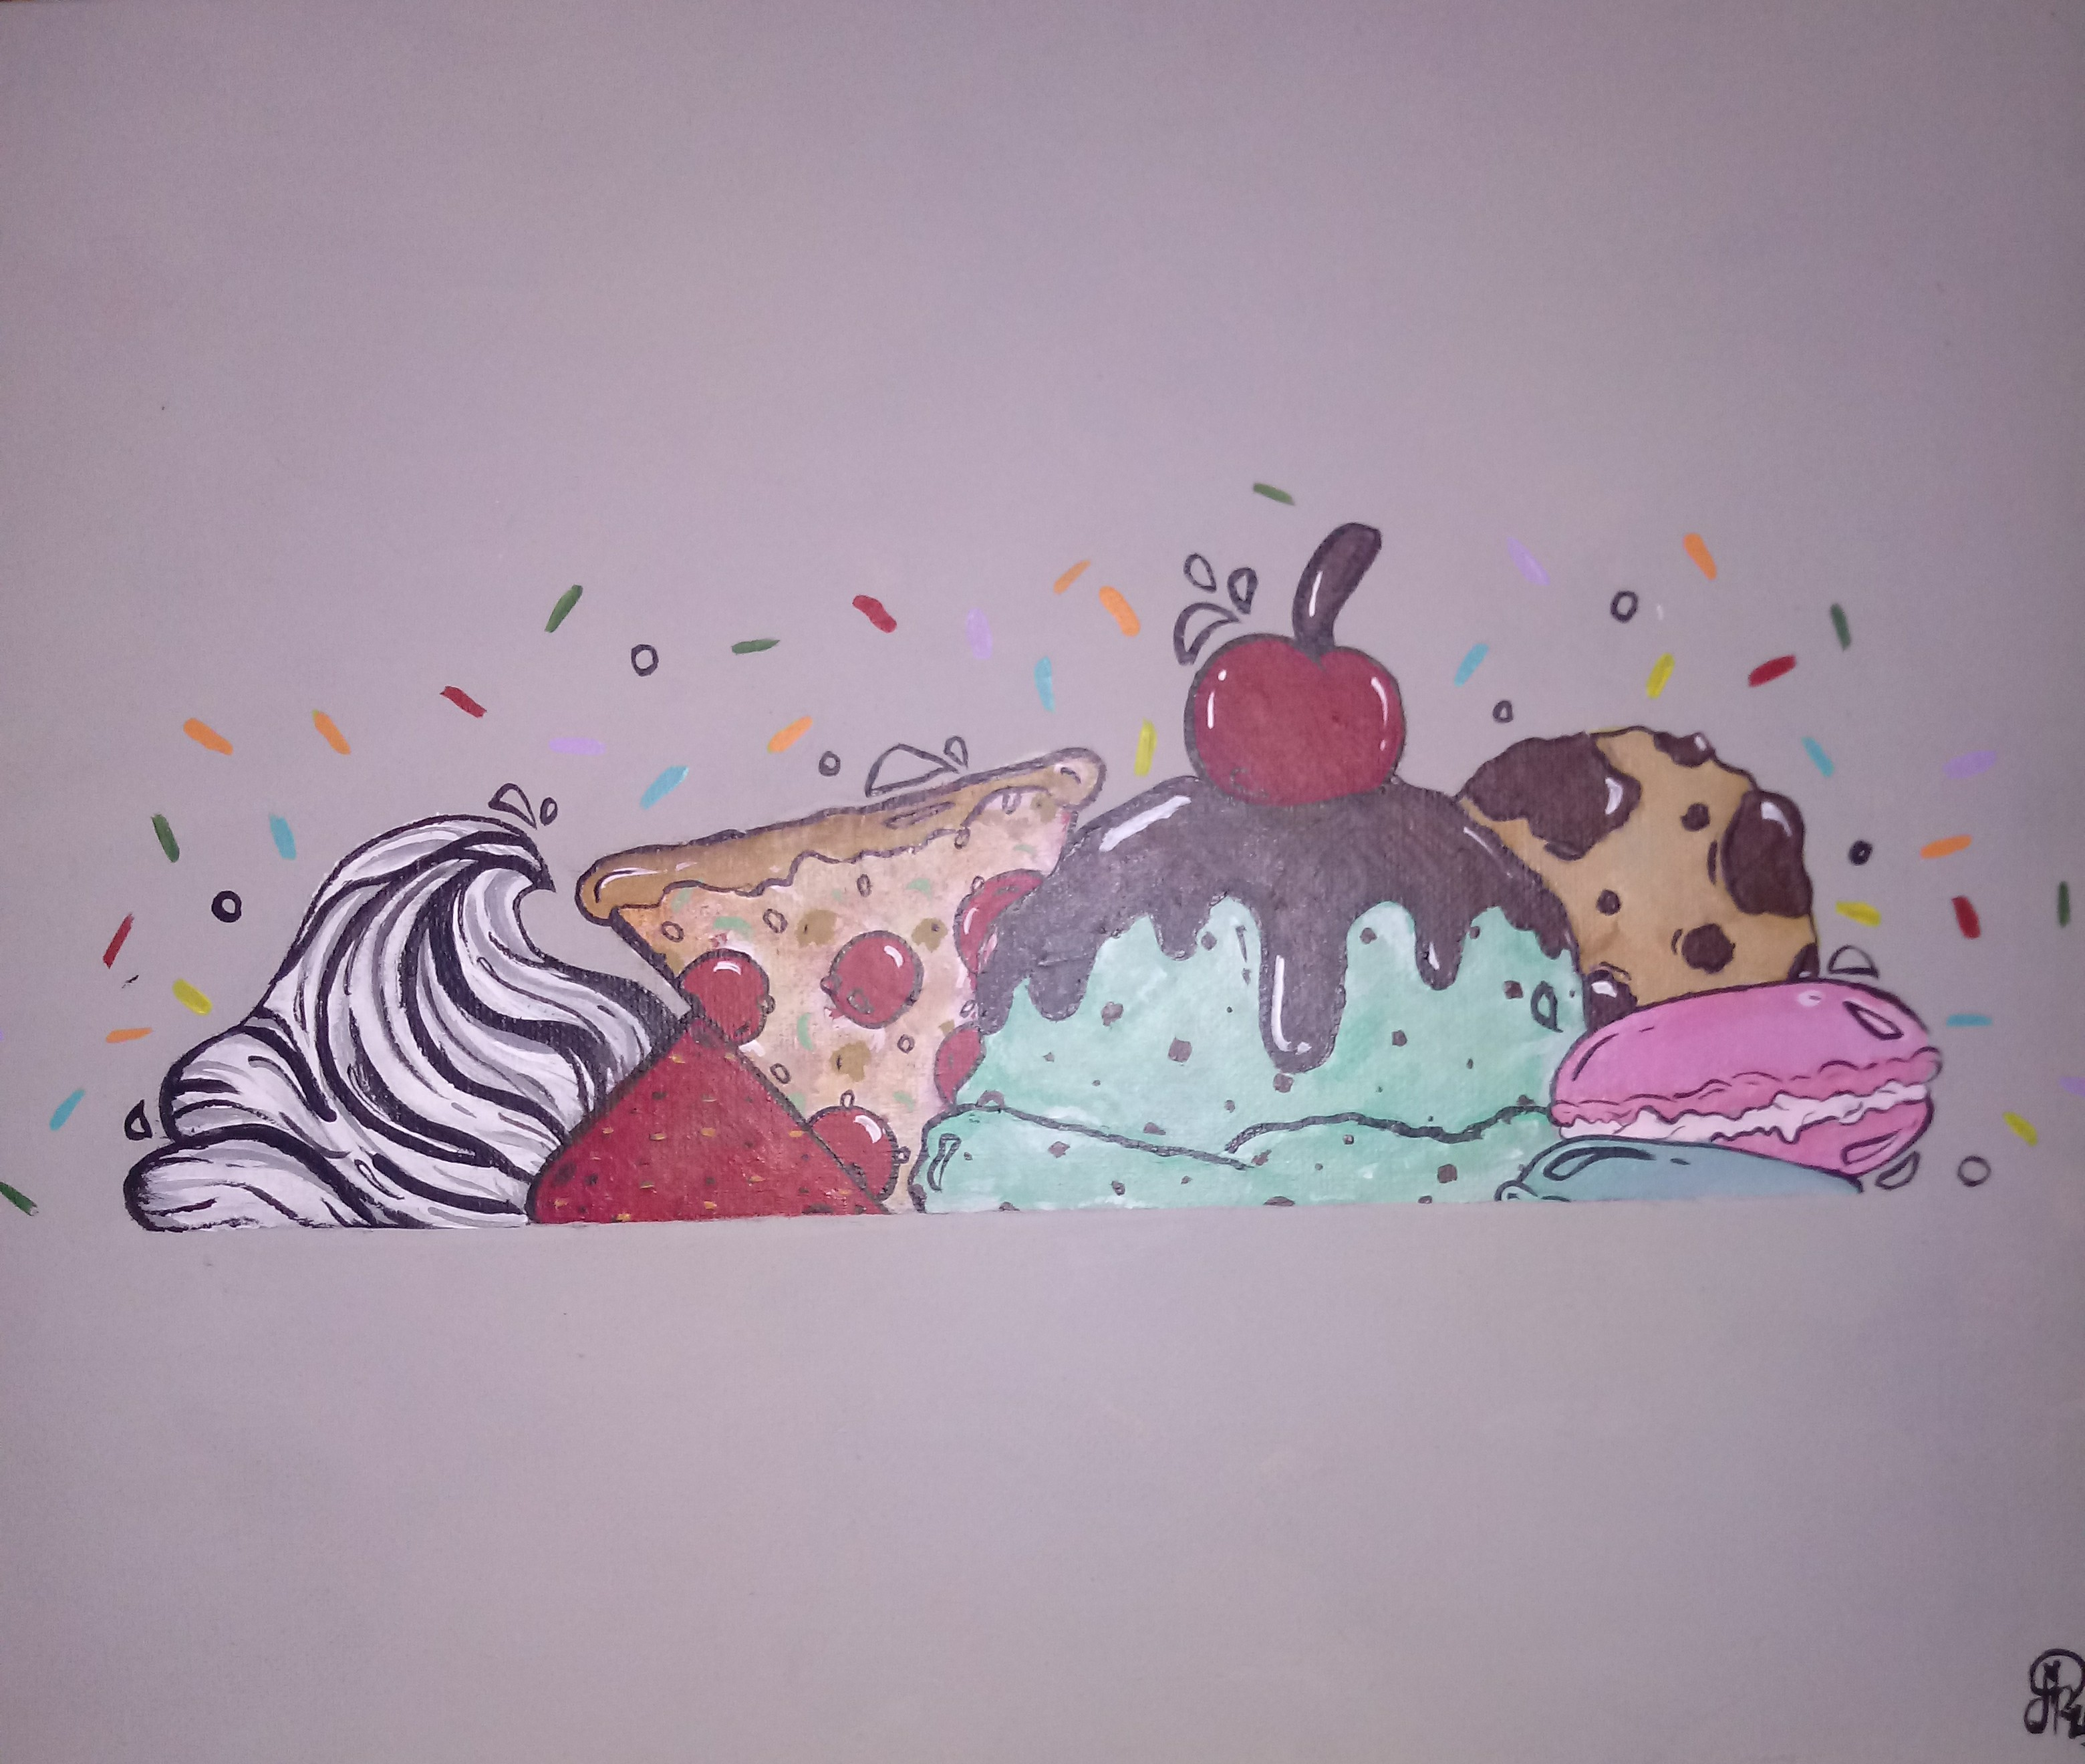 A painting of different sweet snacks including ice cream, pizza, and cookies. Photo courtesy of Jaida Pina.